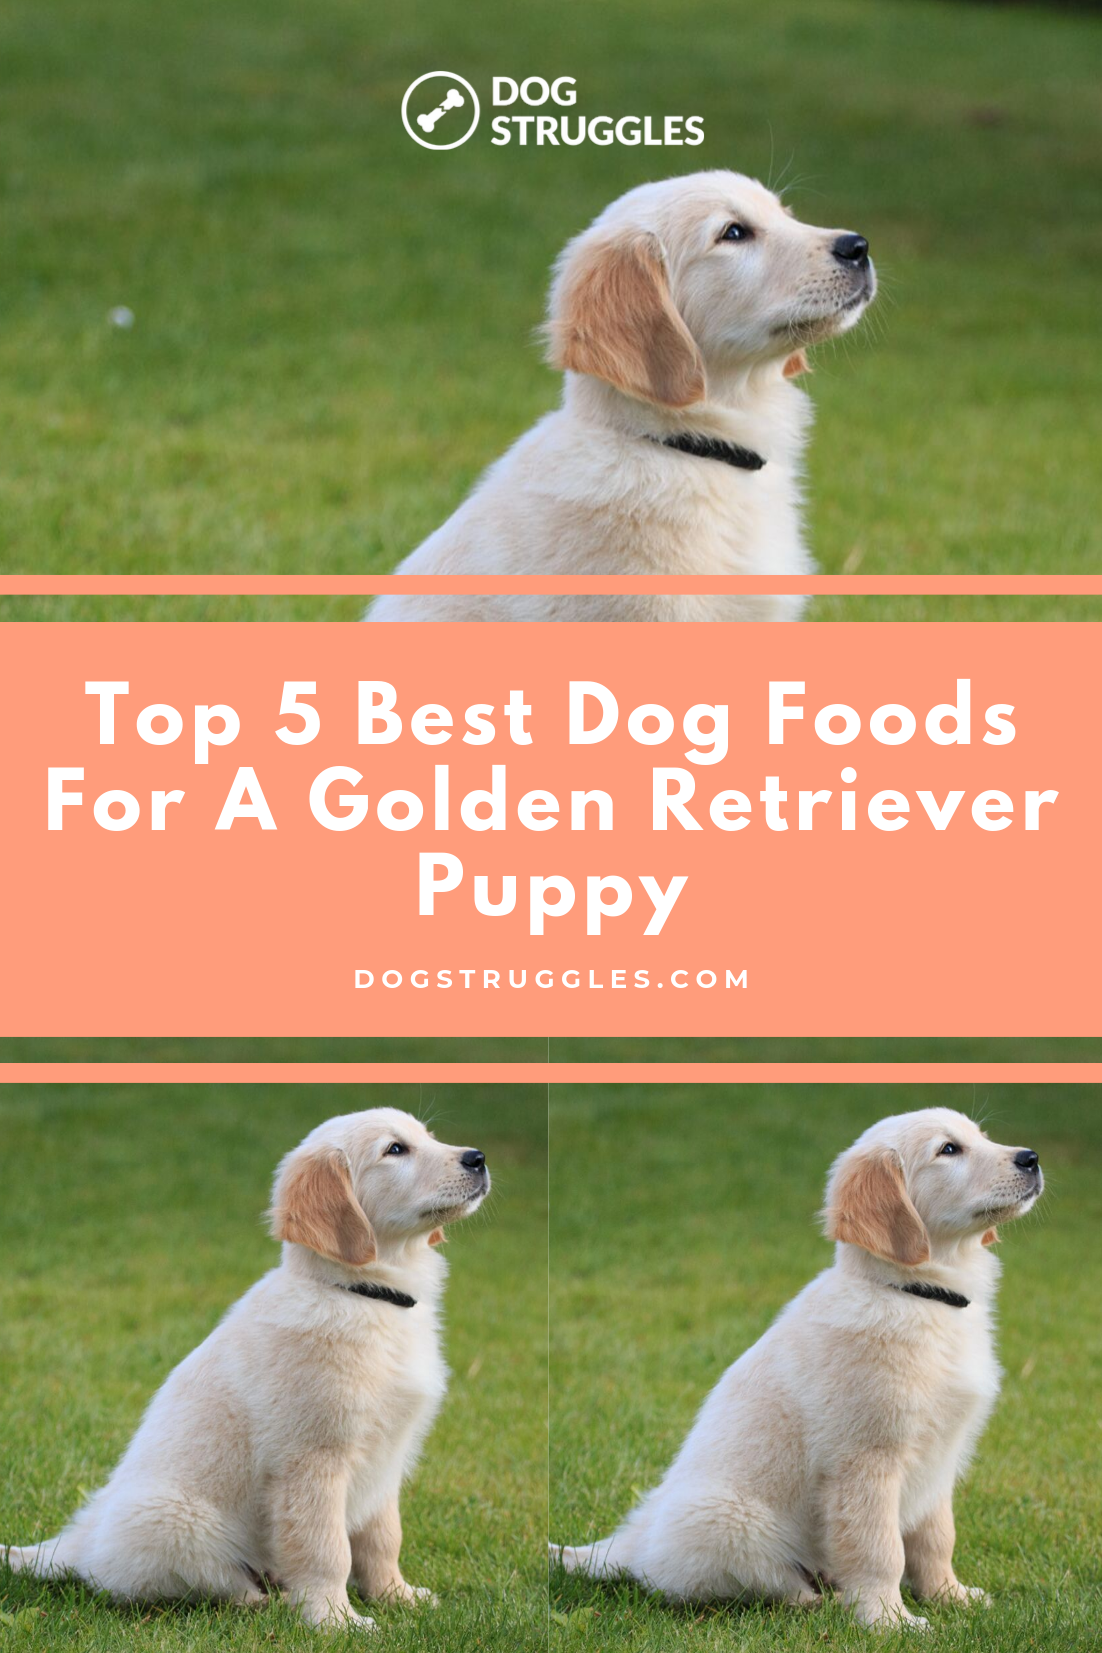 The Golden Retriever Is One Of The Most Popular Dog Breeds In The World And It S Not Hard To See Why This Medium Sized D Puppies Dogs Golden Retriever Puppy